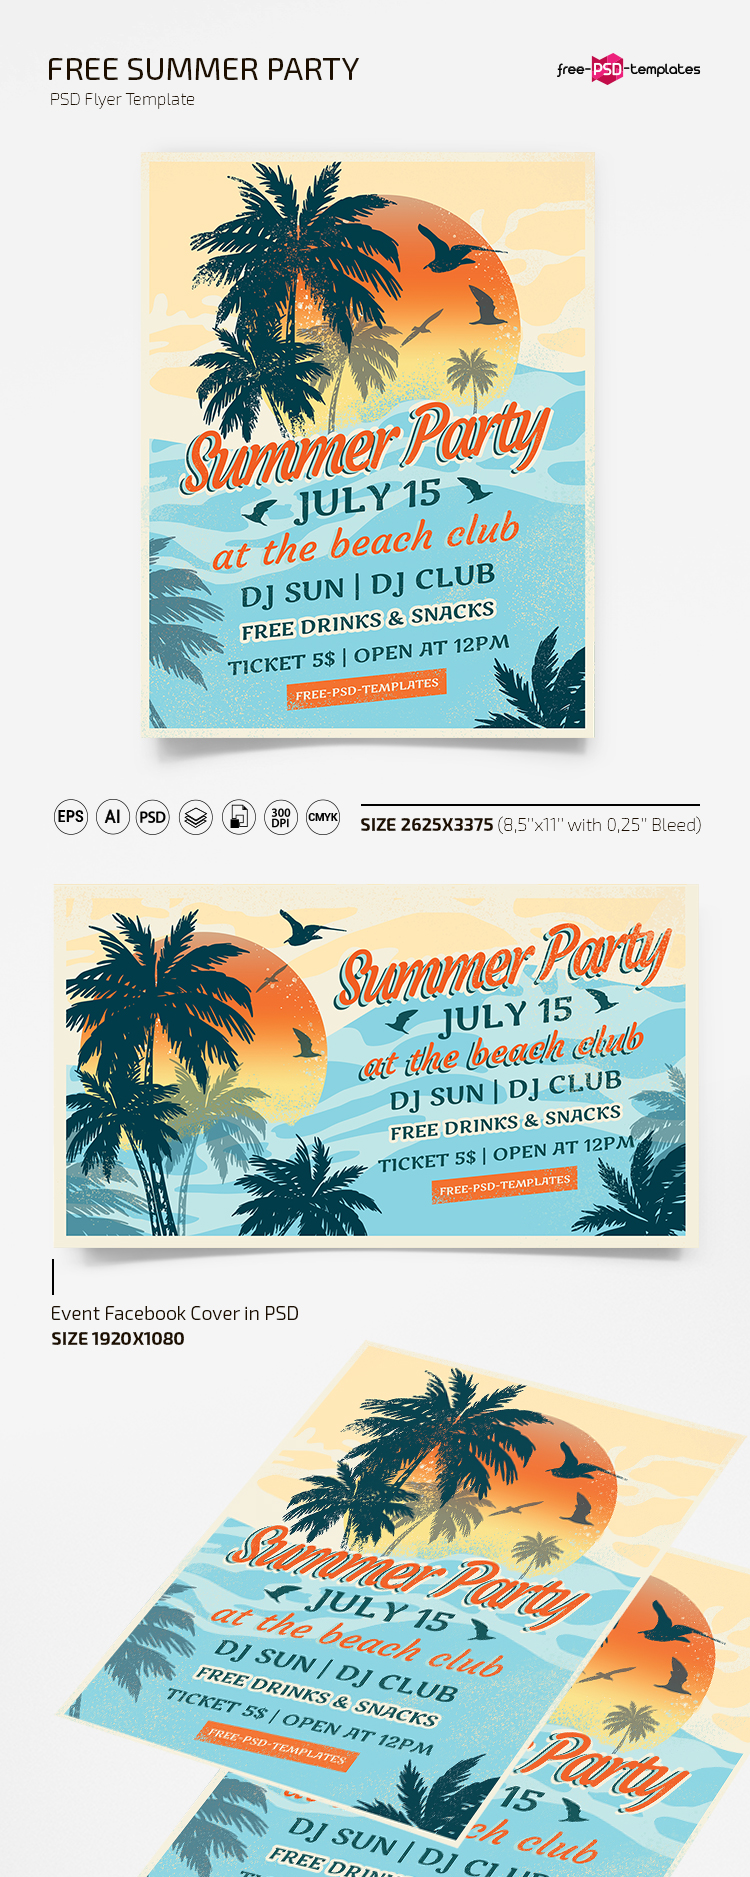 Free Summer Party Flyer Template in PSD + AI